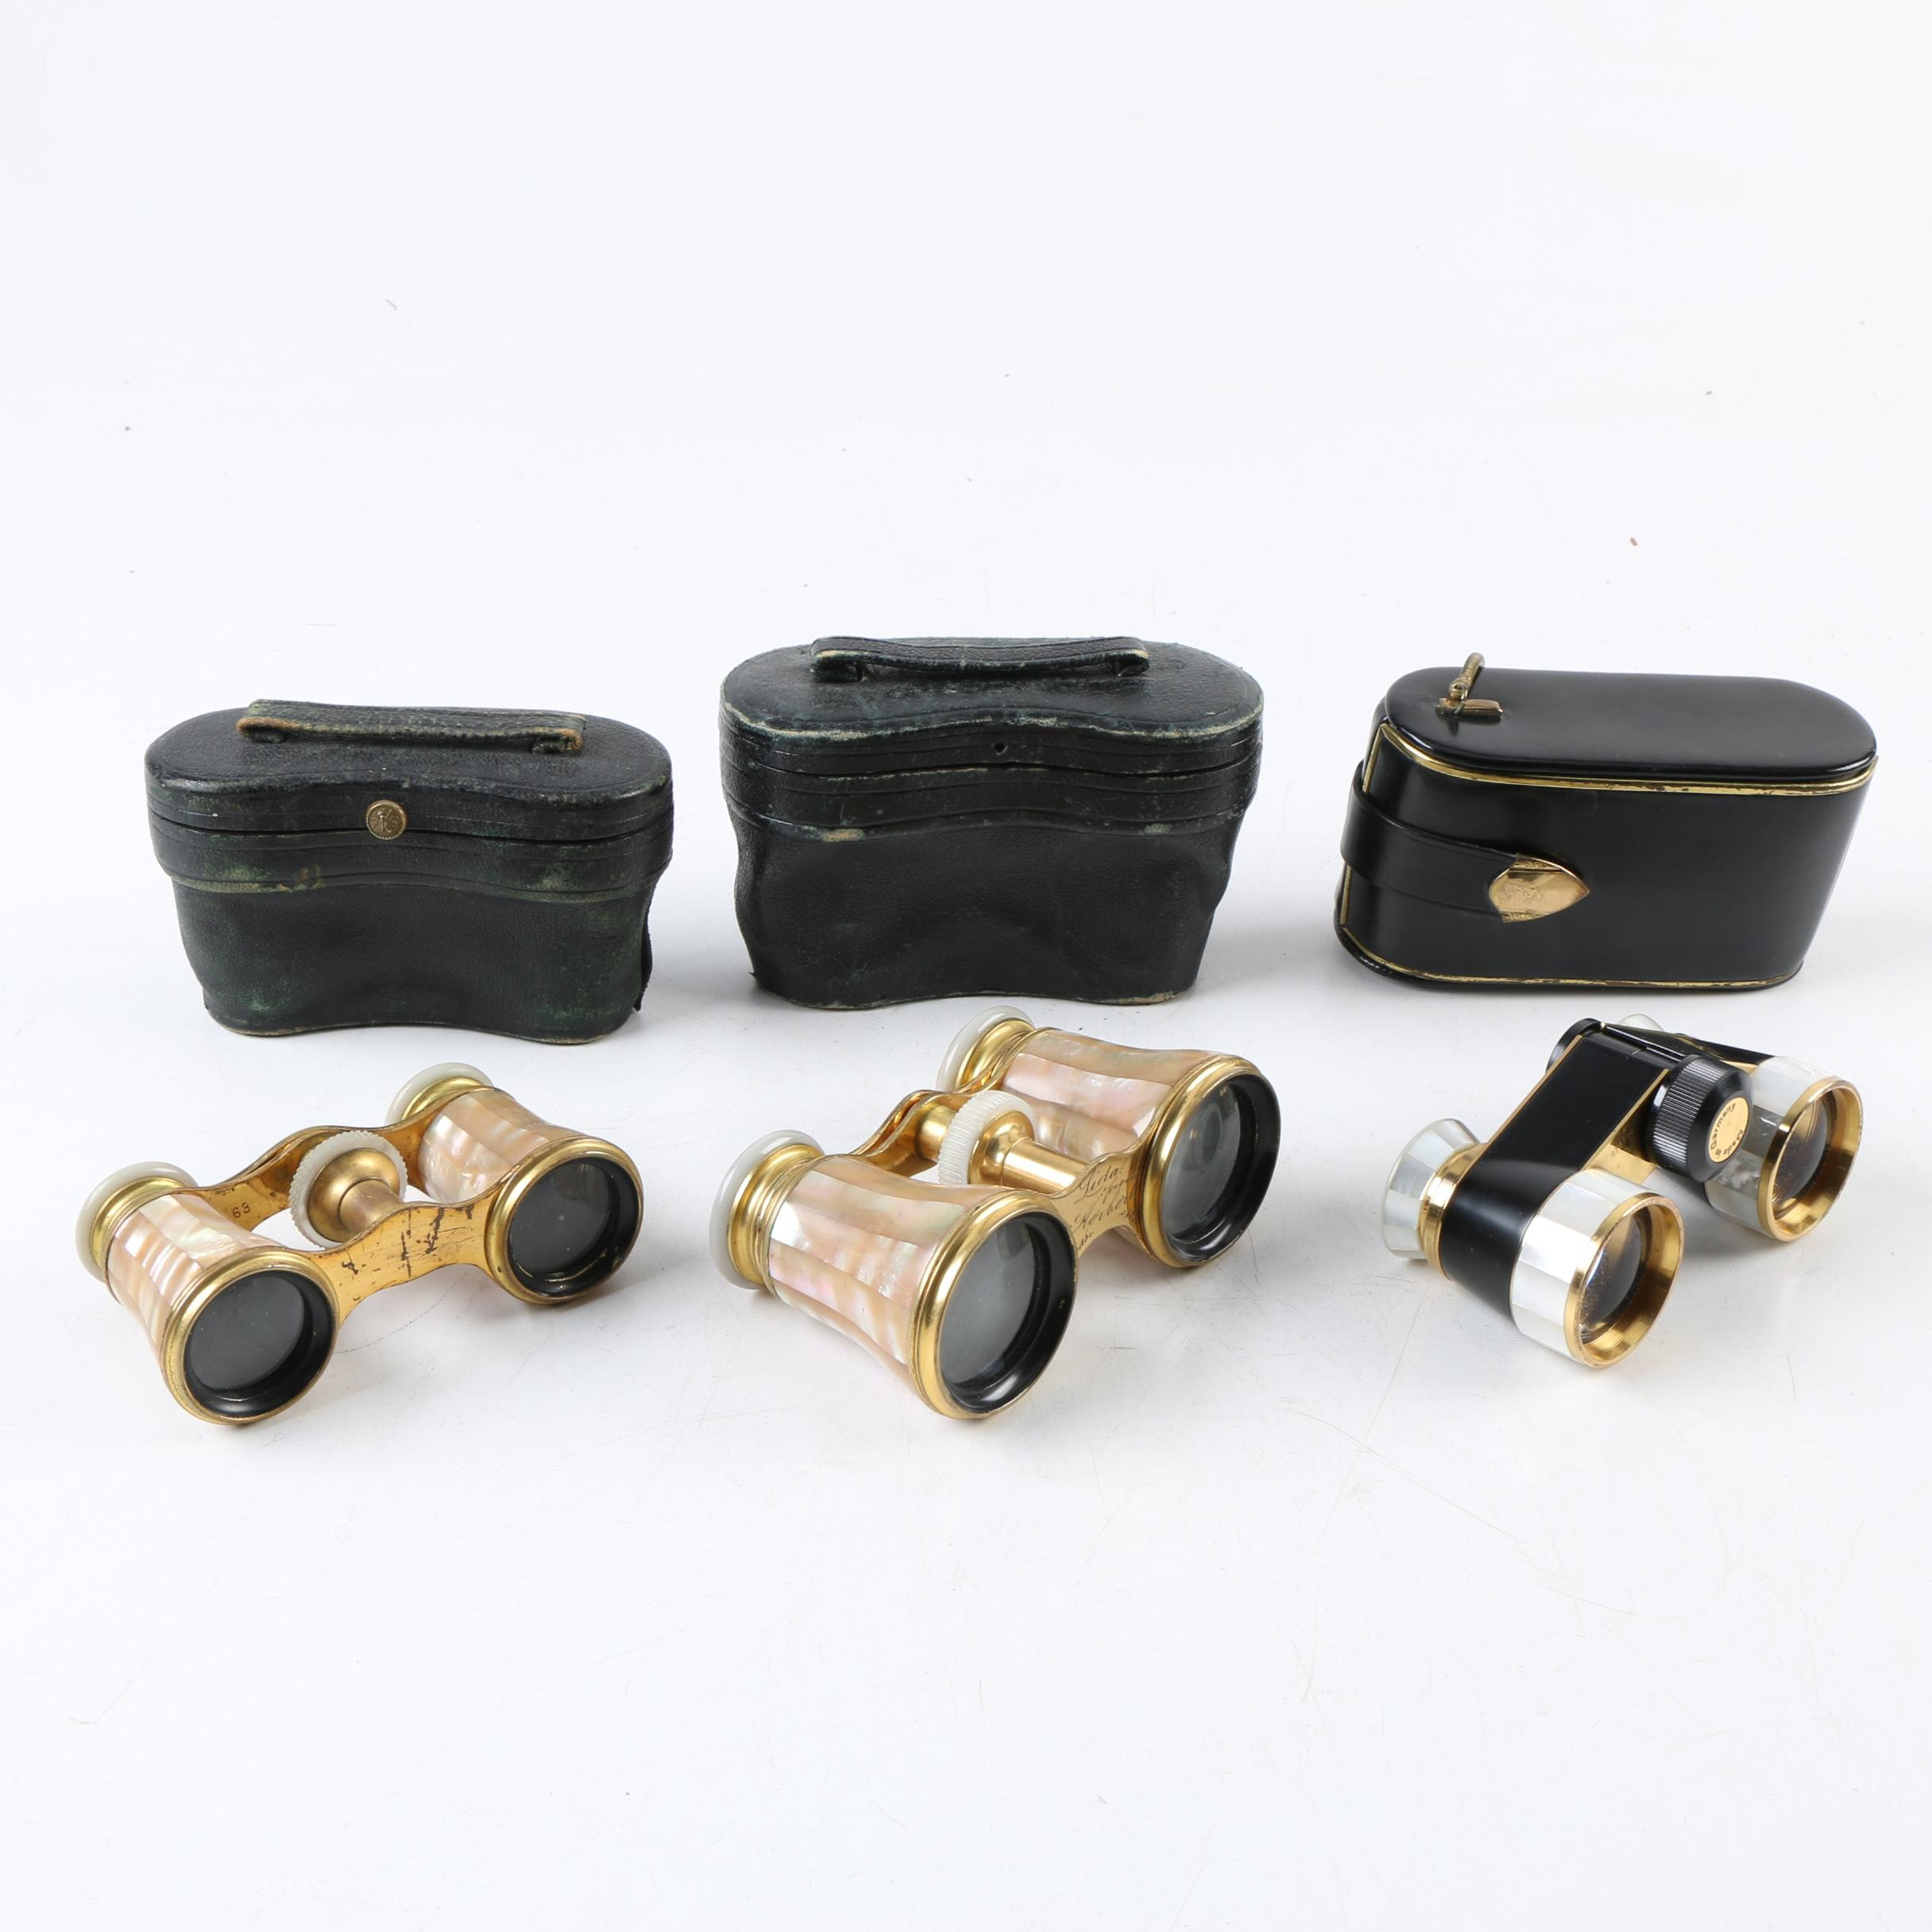 Antique and Vintage LeMaire Paris and Carl Zeiss Opera Glasses